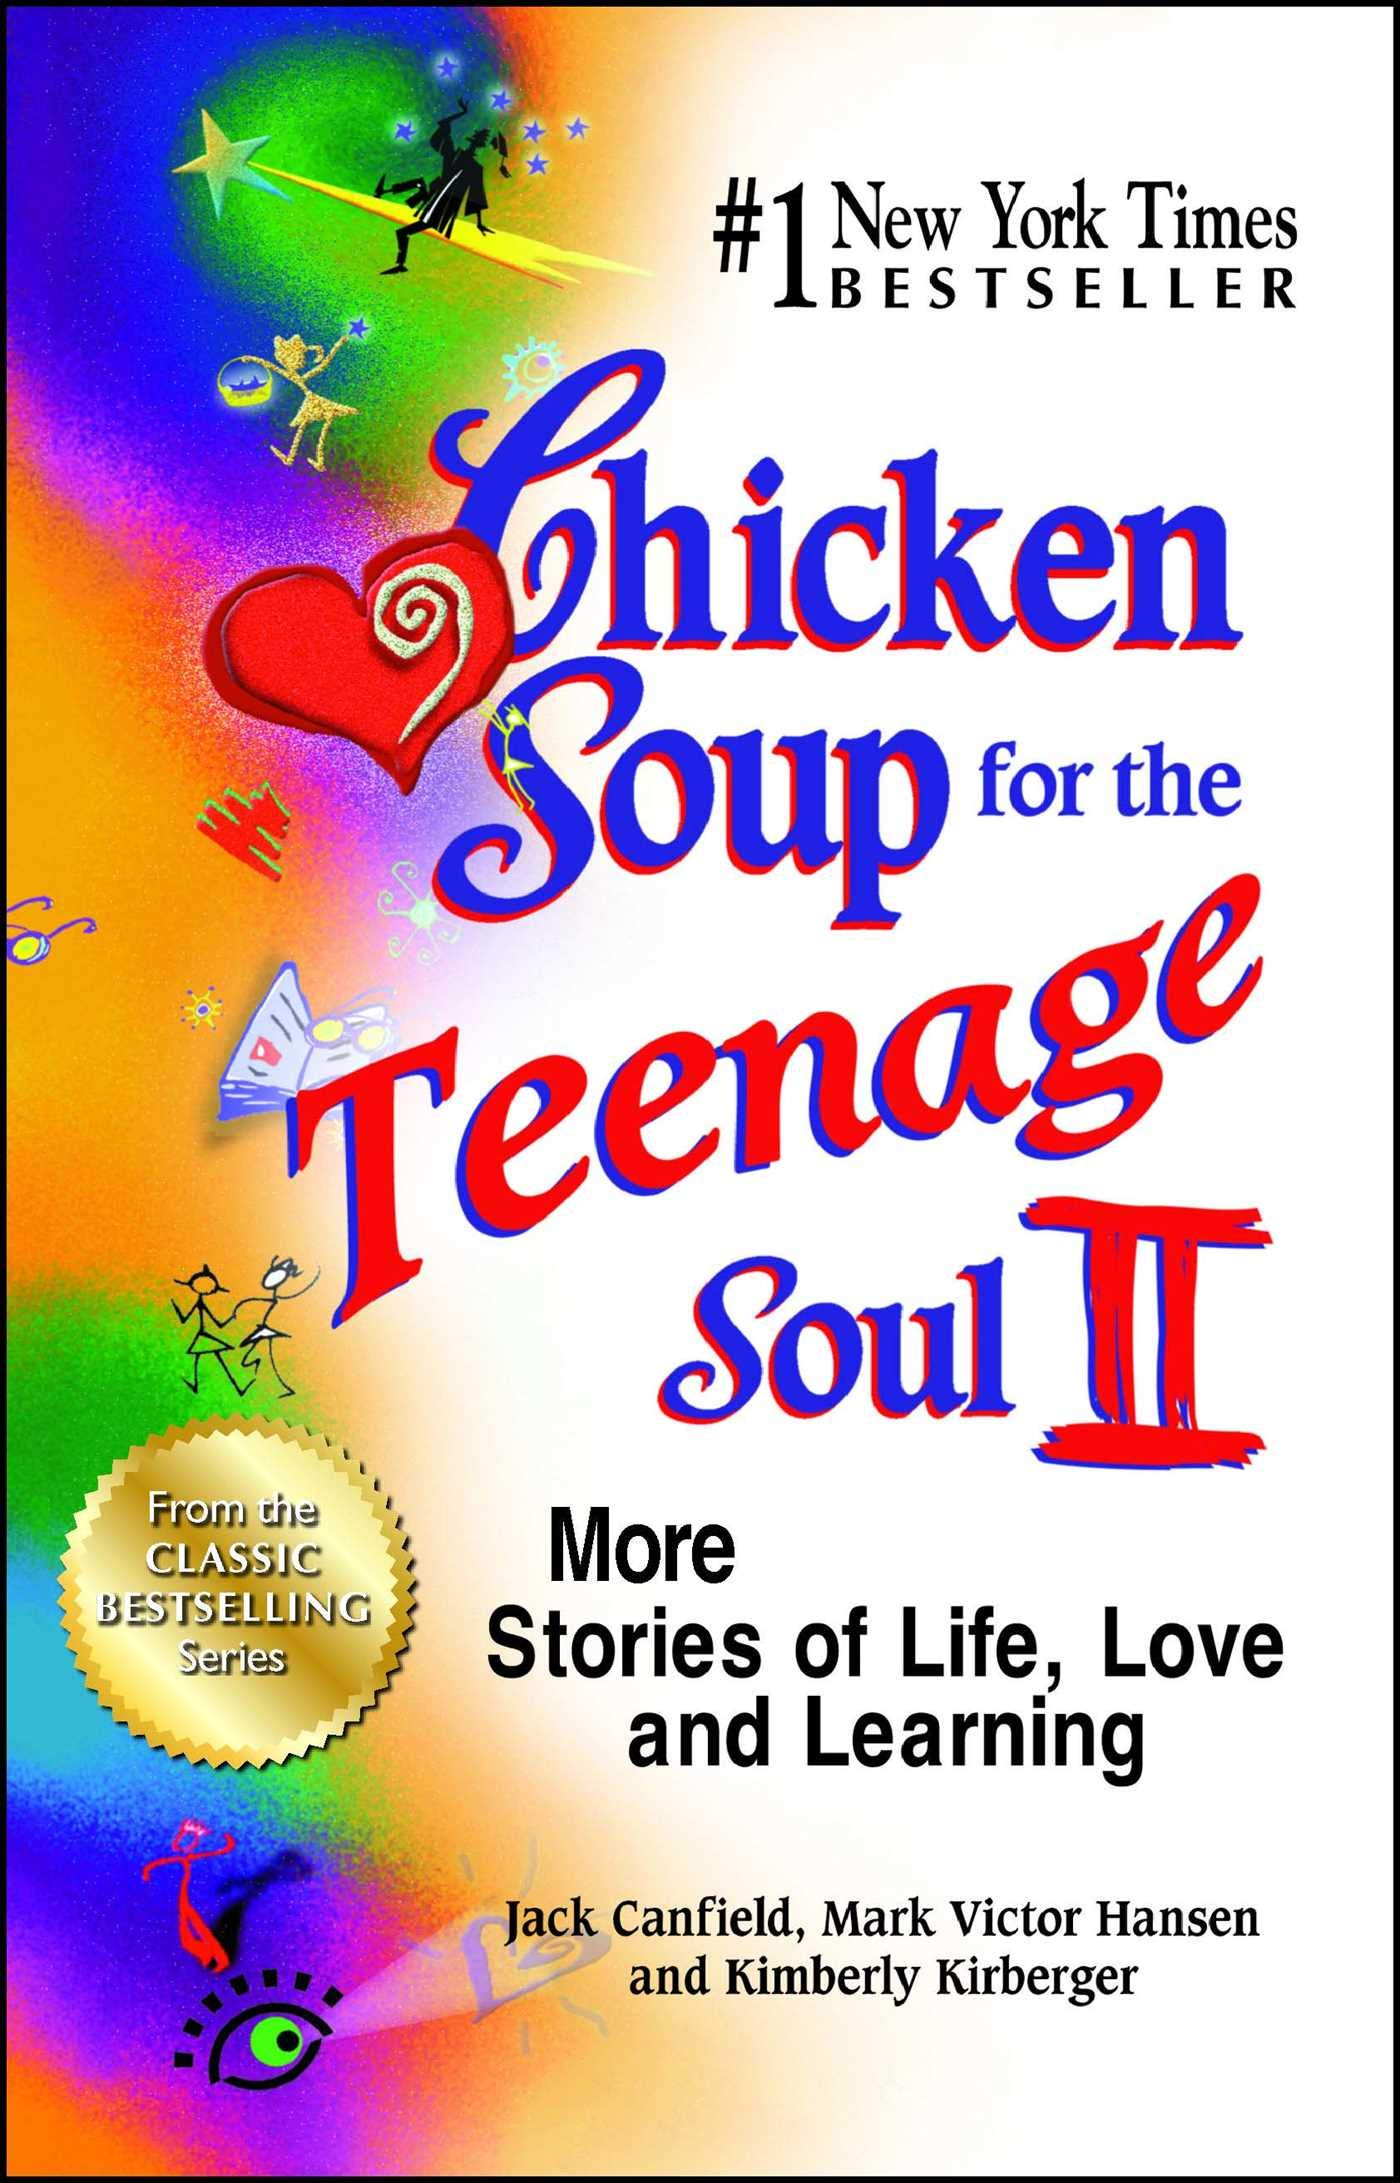 Amazon.com: Chicken Soup for the Teenage Soul II: More Stories of Life,  Love and Learning (9781623611224): Jack Canfield, Mark Victor Hansen, ...